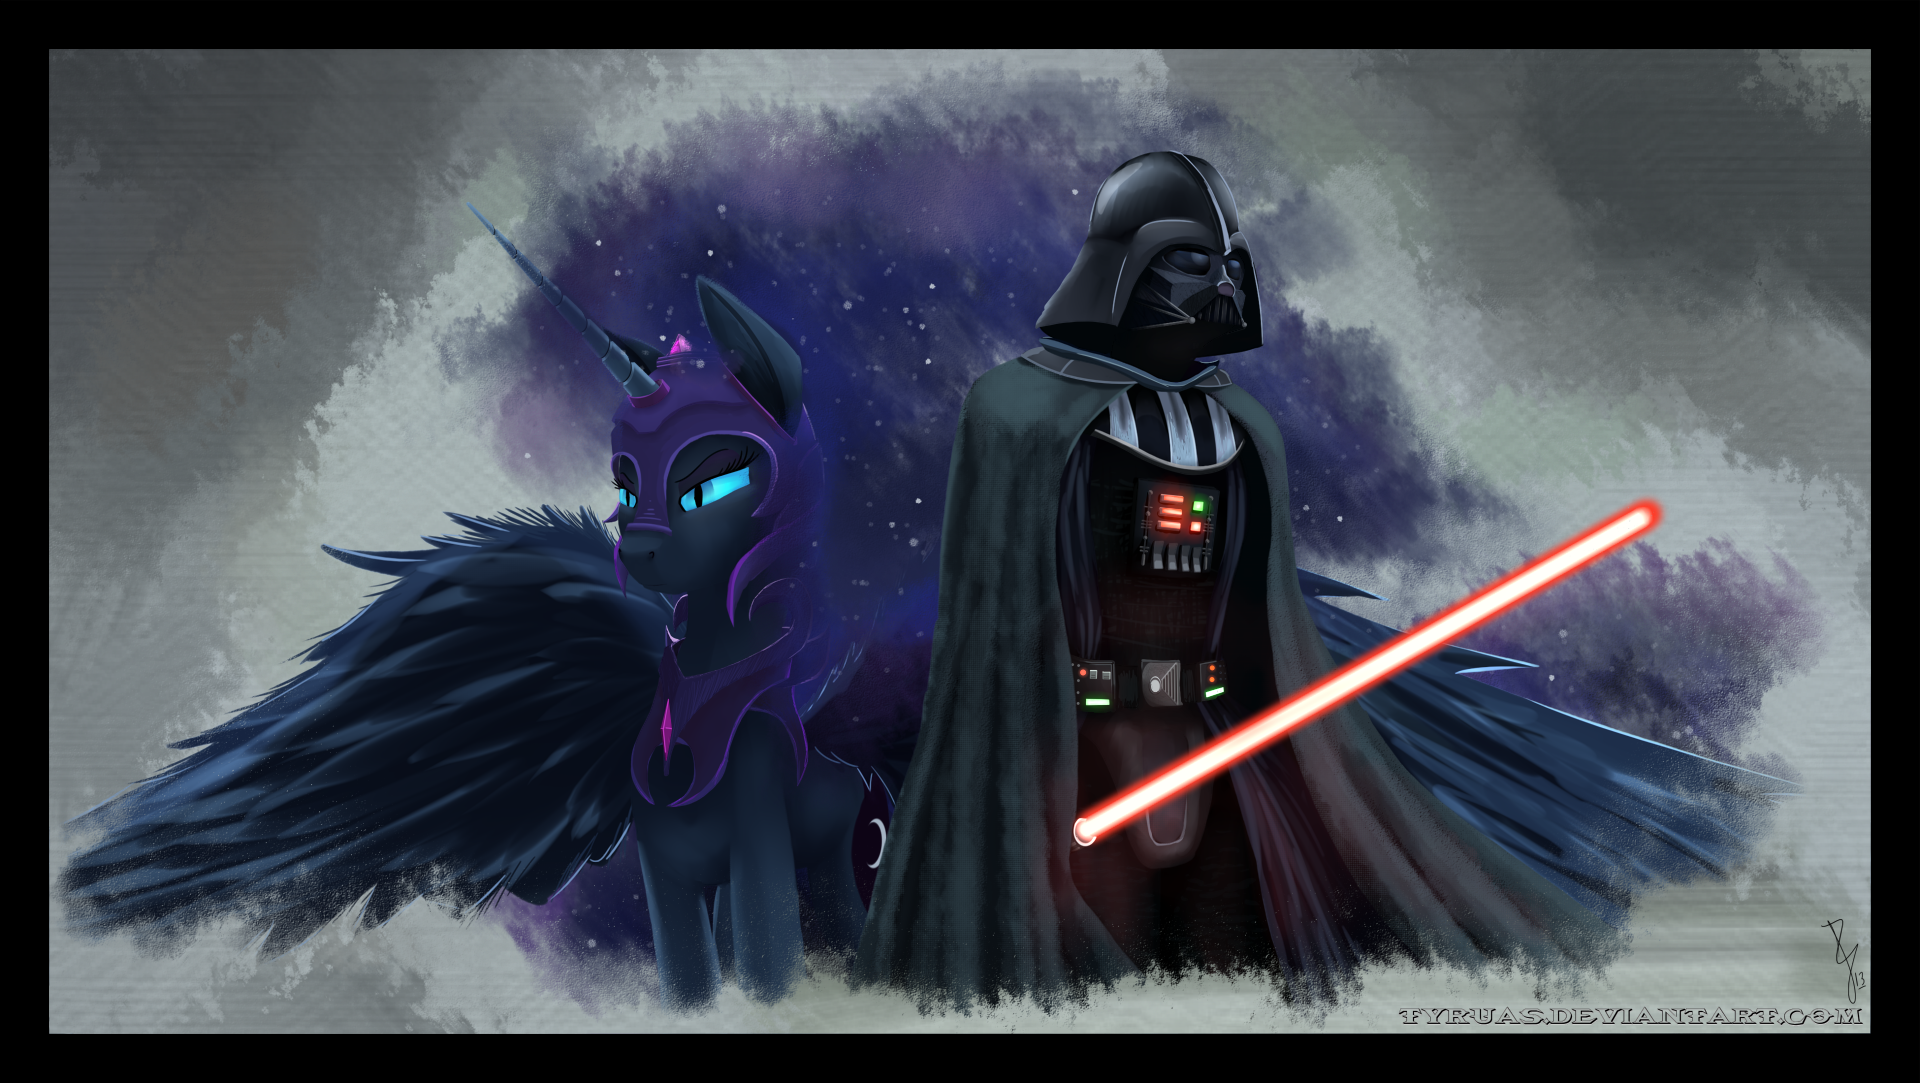 Epic-my-little-pony-friendship-is-magic-